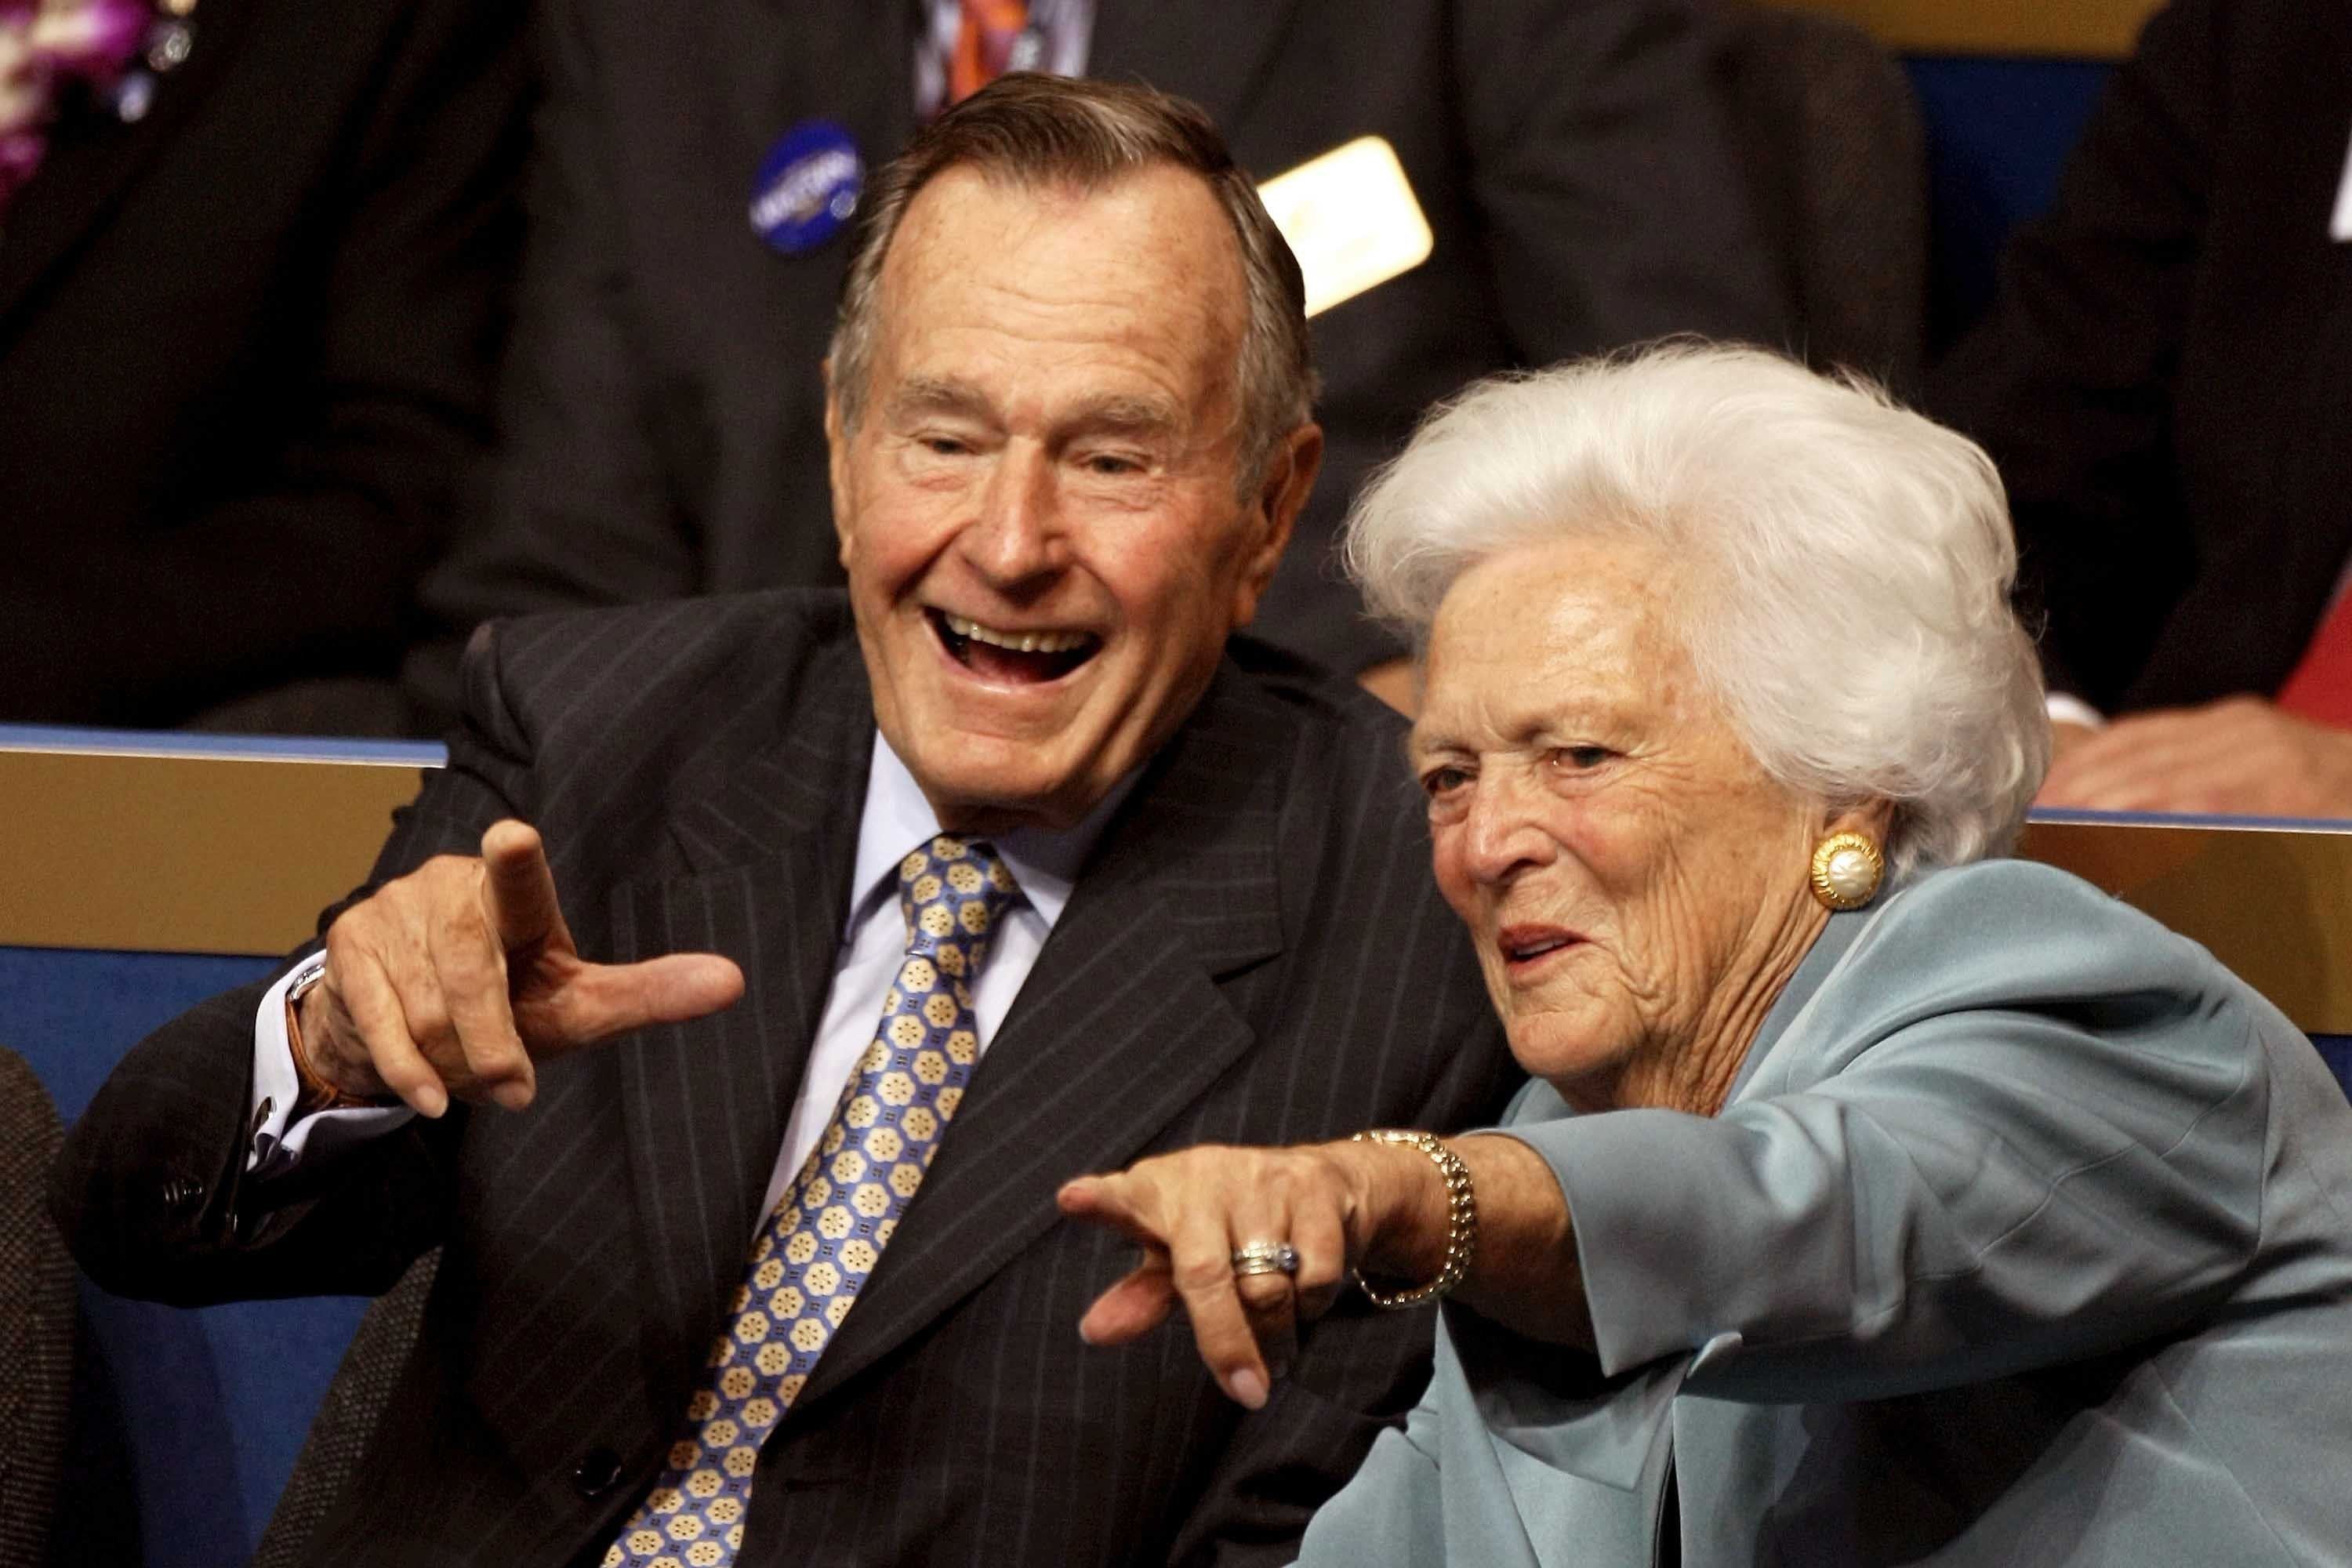 George HW Bush eager for doctors' OK to leave Texas hospital